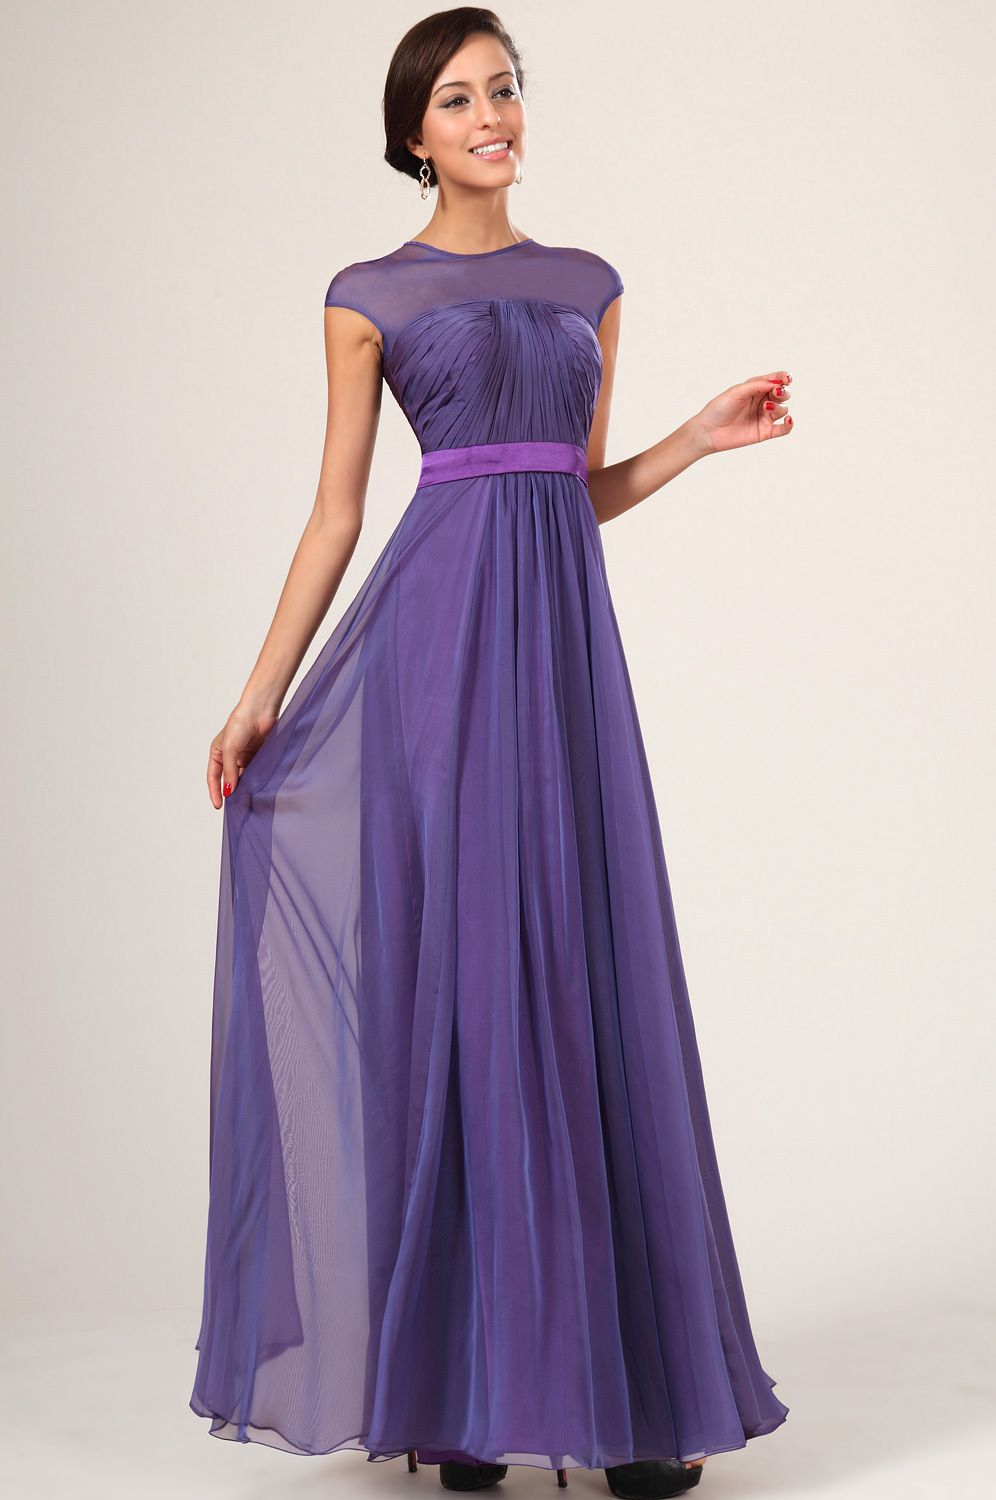 With hundreds of styles under 120 shop bridesmaid dressses by color price silhouette and design trend to create your perfect look Available in a wide range of